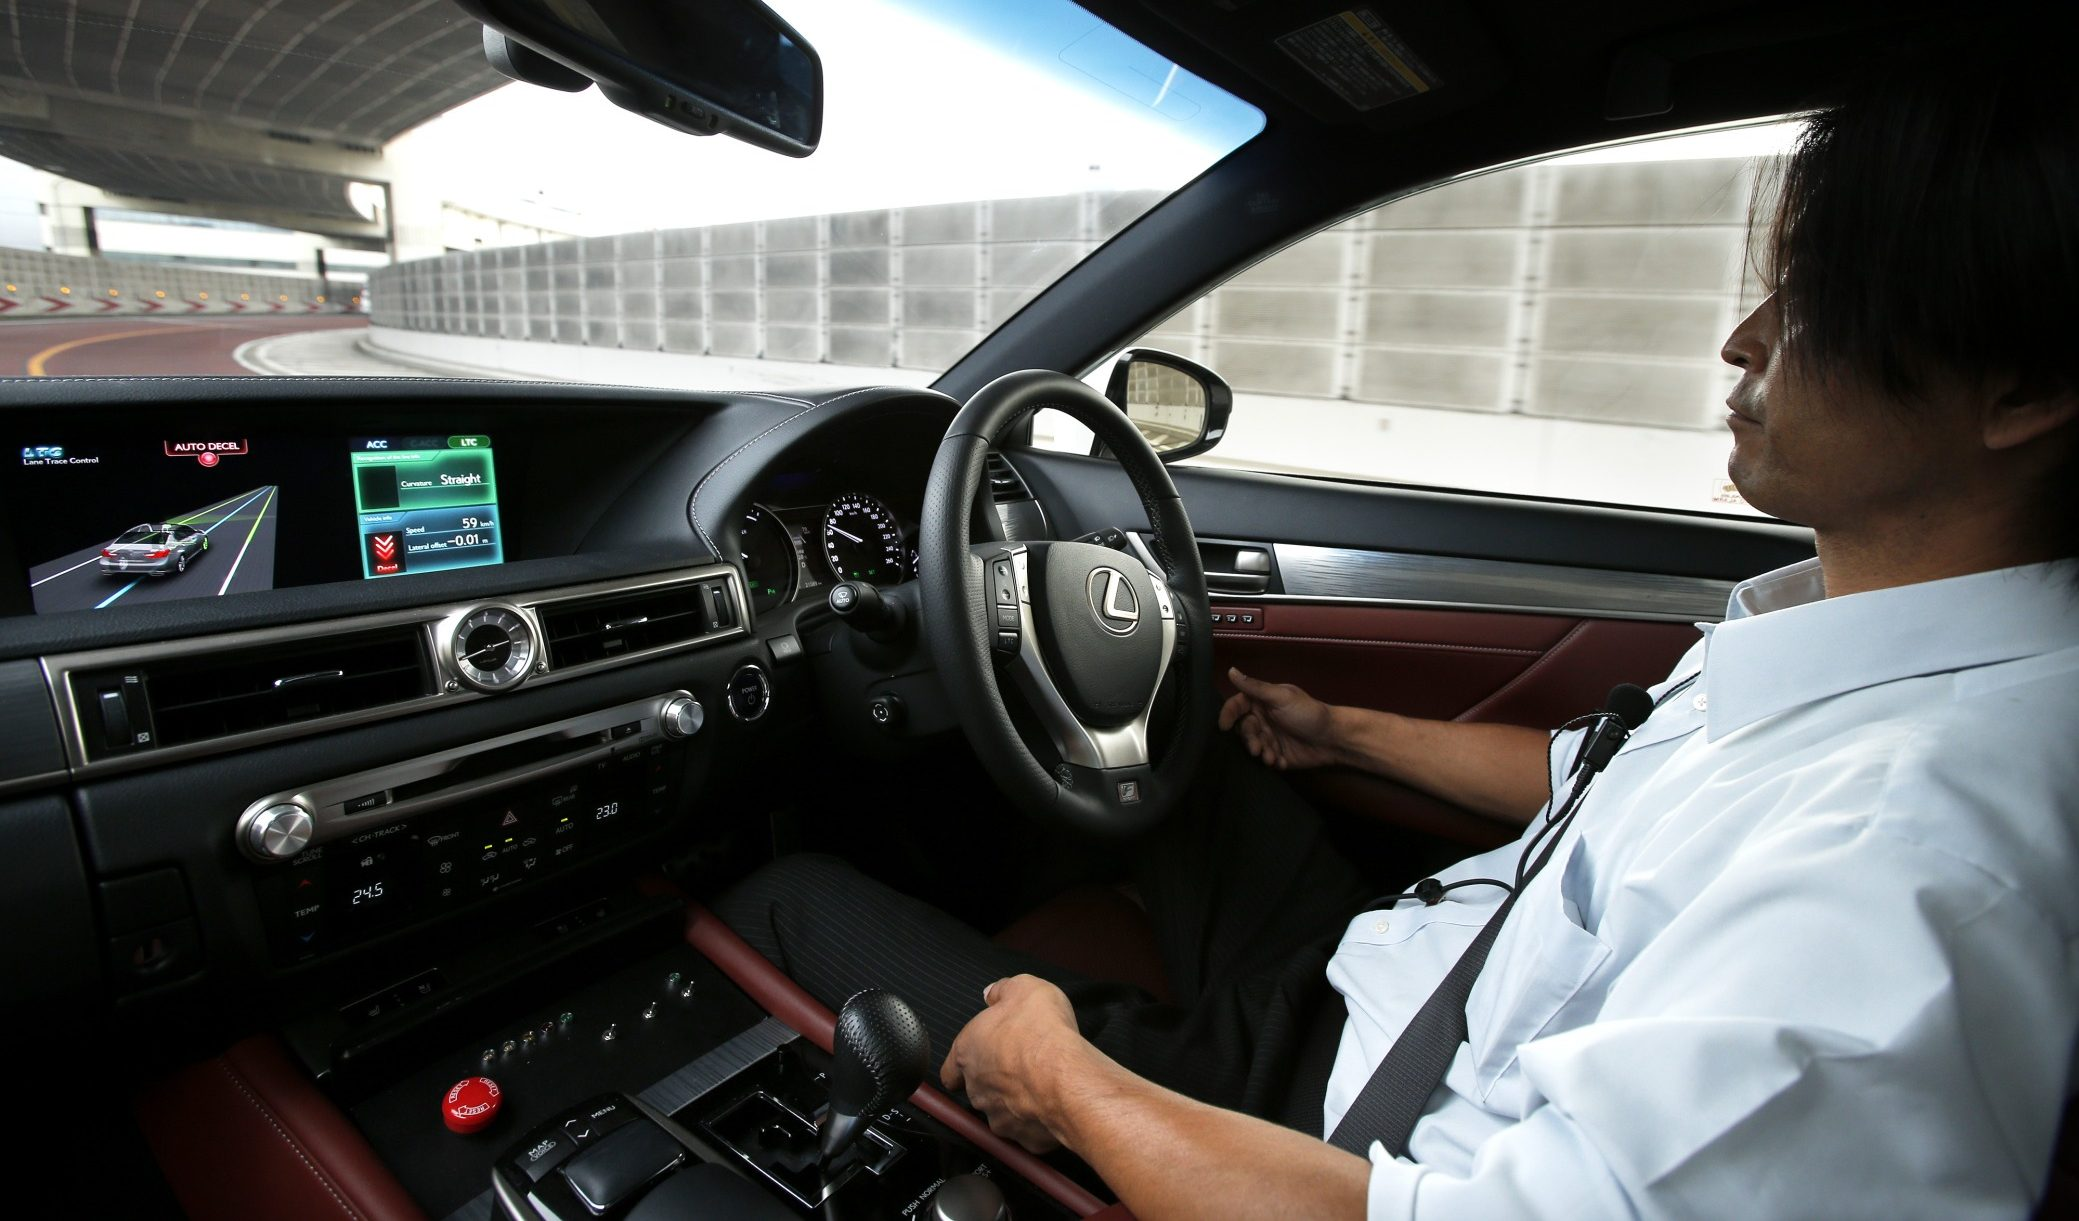 Toyota Motor Corp. Demonstrates Next-generation Advanced Driving Support System